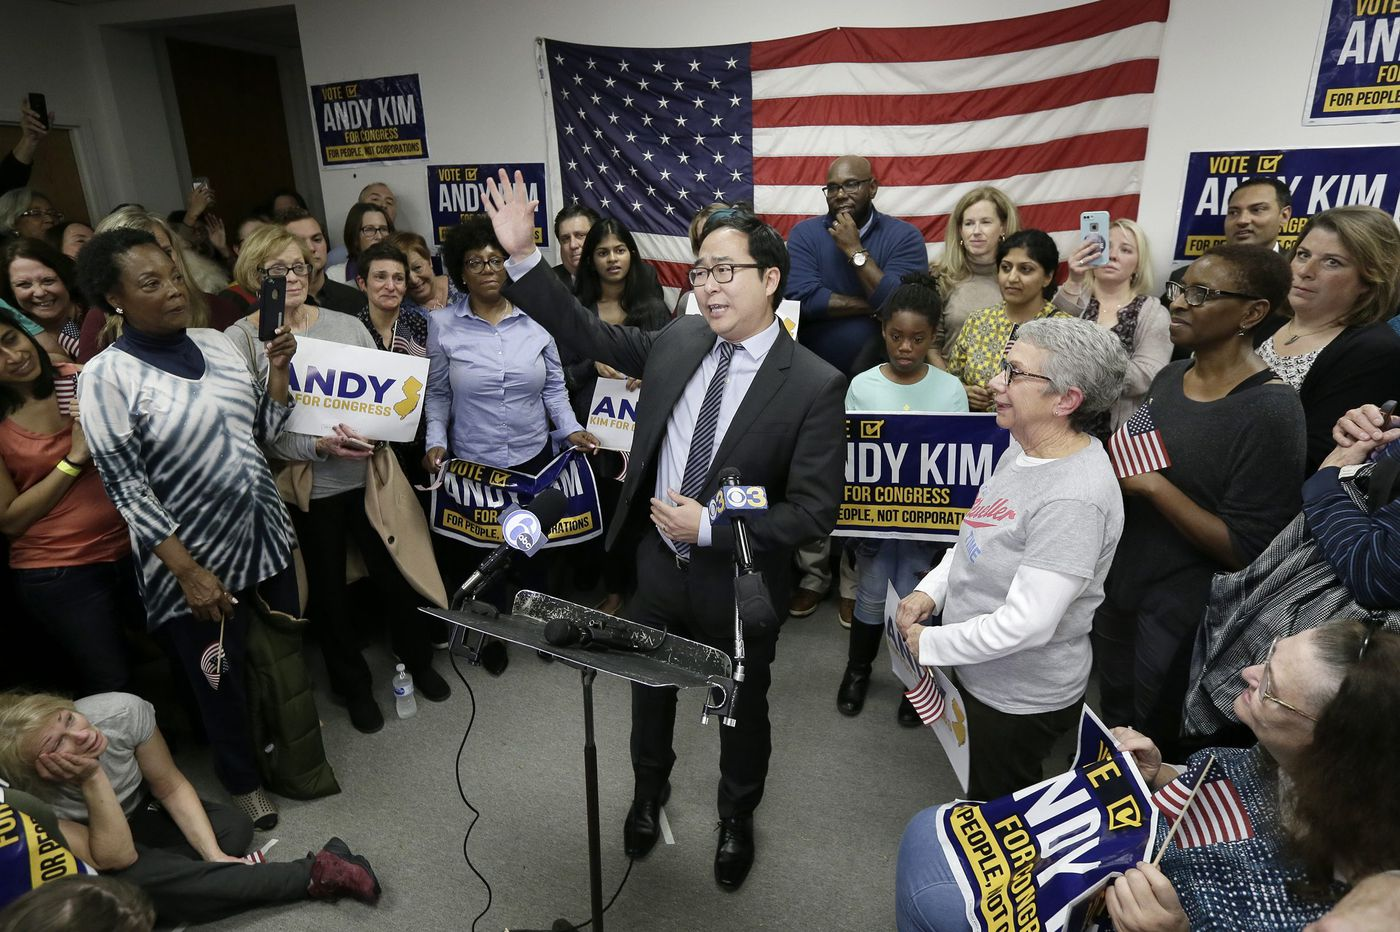 Rep. Tom MacArthur concedes to Andy Kim as N.J. race is called